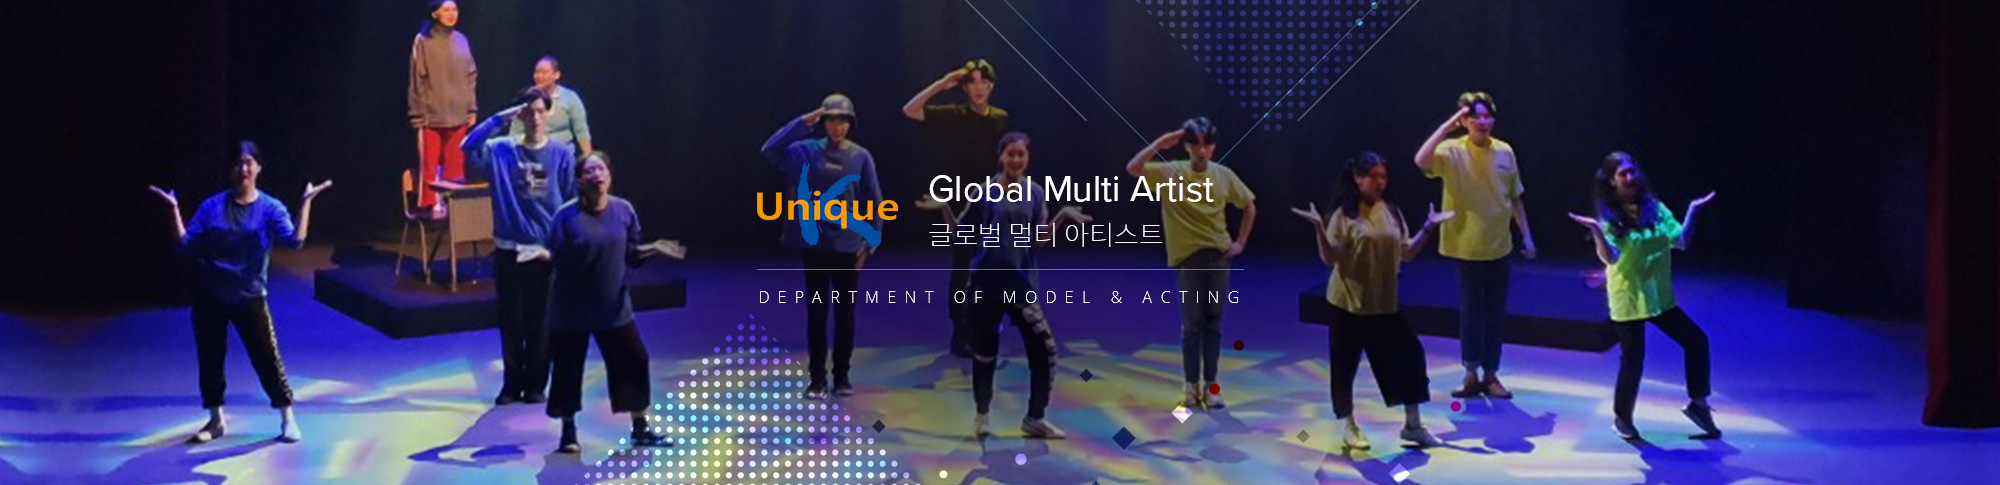 Unique Global Modeltainer 글로벌 모델테이너 DEPARTMENT OF MODEL